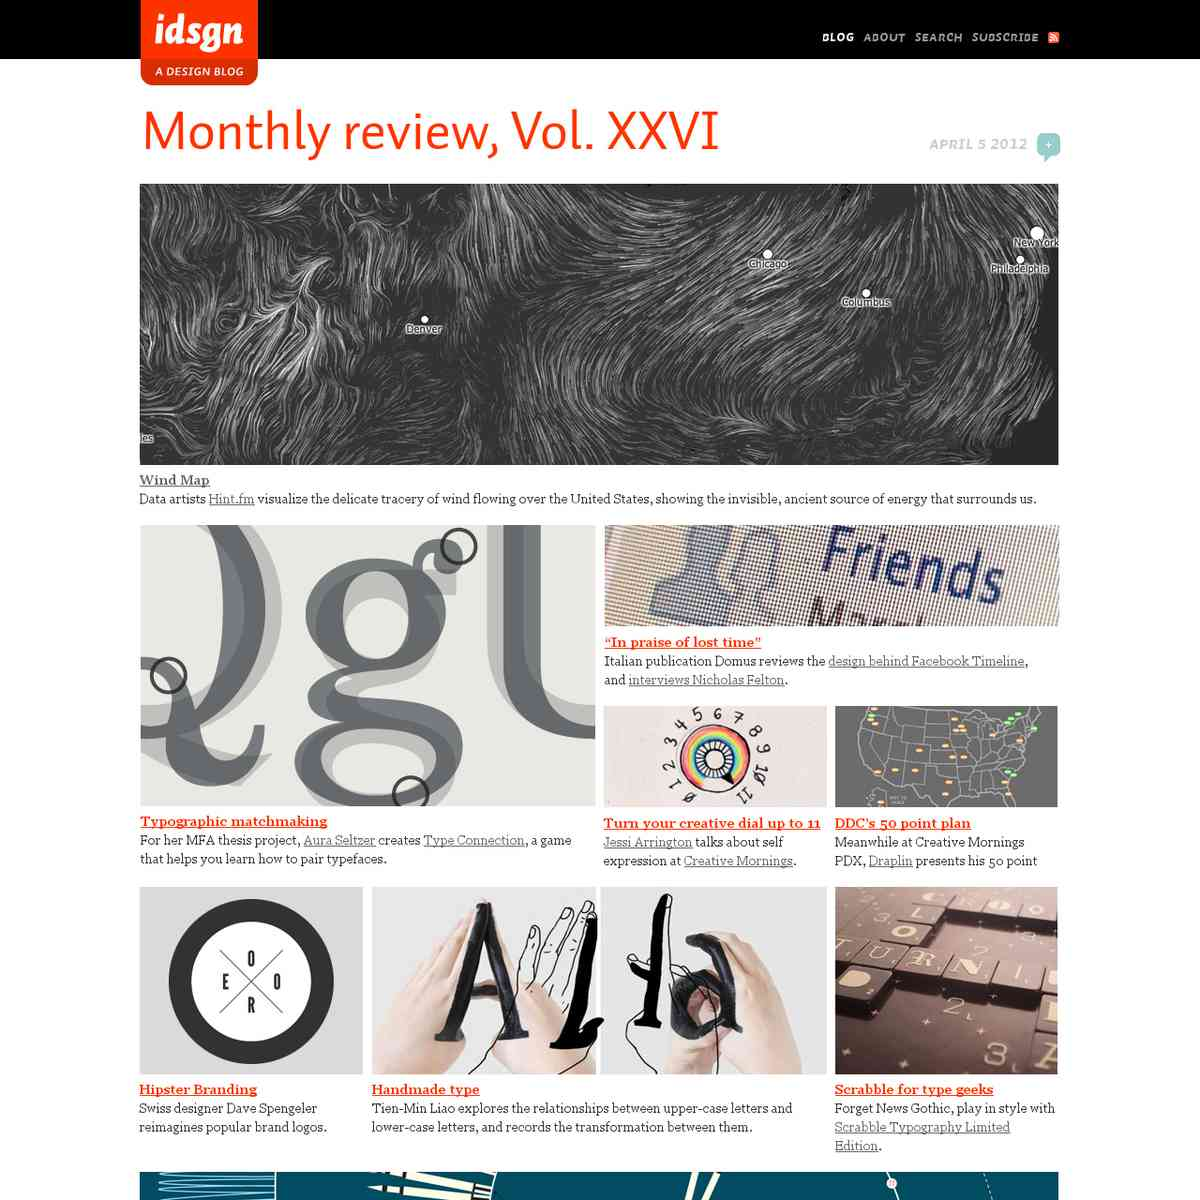 Monthly review, Vol. XXVI: idsgn (a design blog)